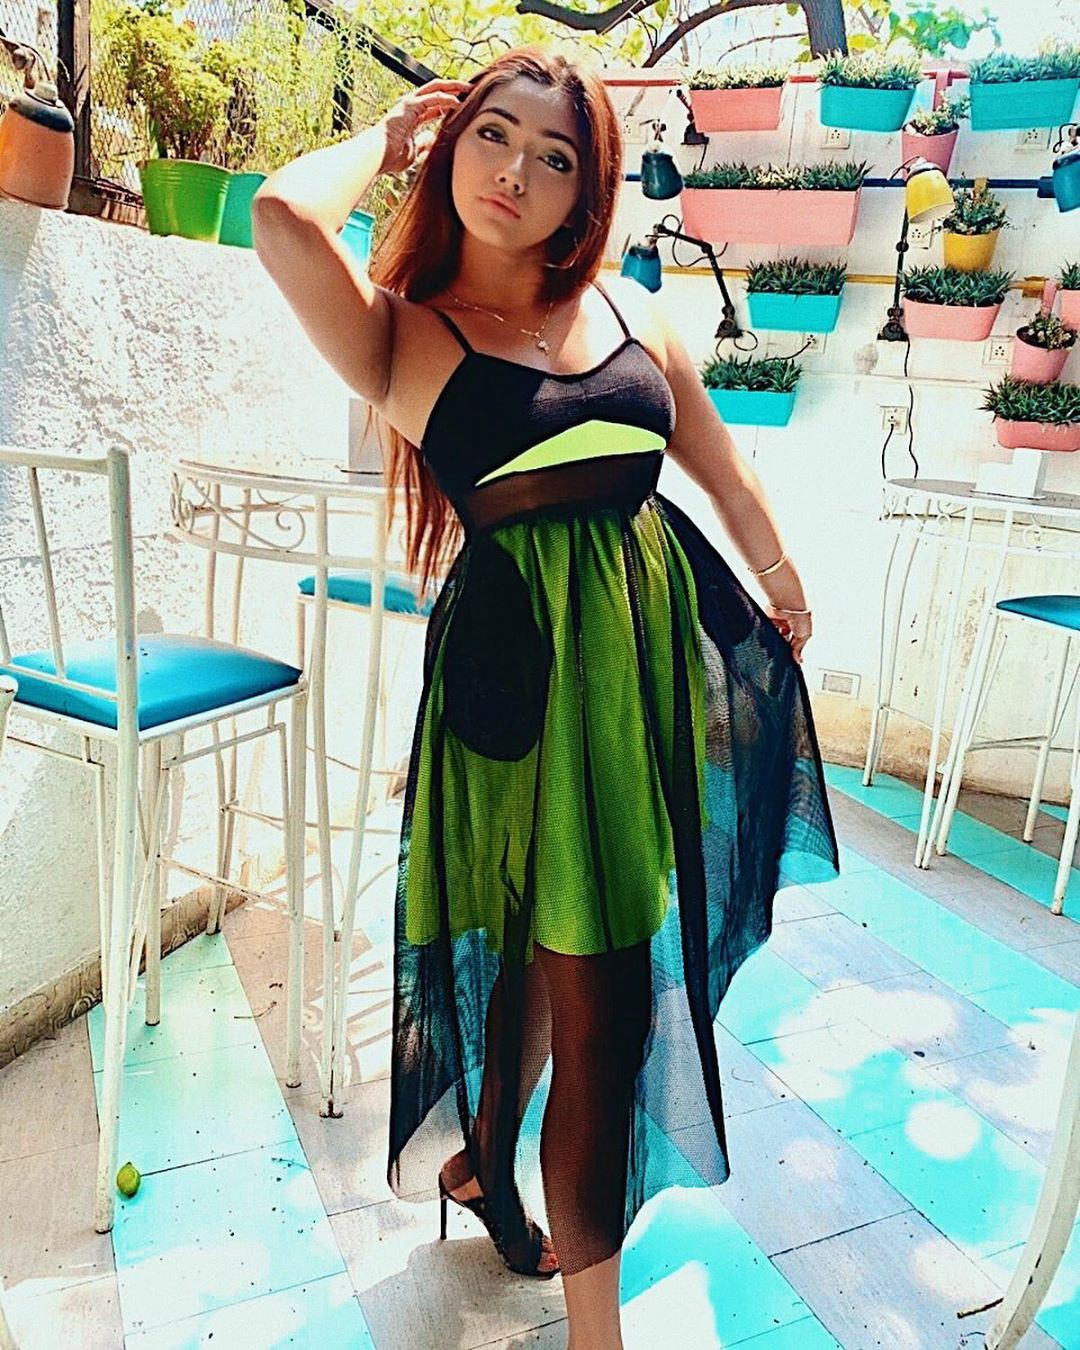 turquoise dress for girls with dress, girls photoshoot, Long Hair Women